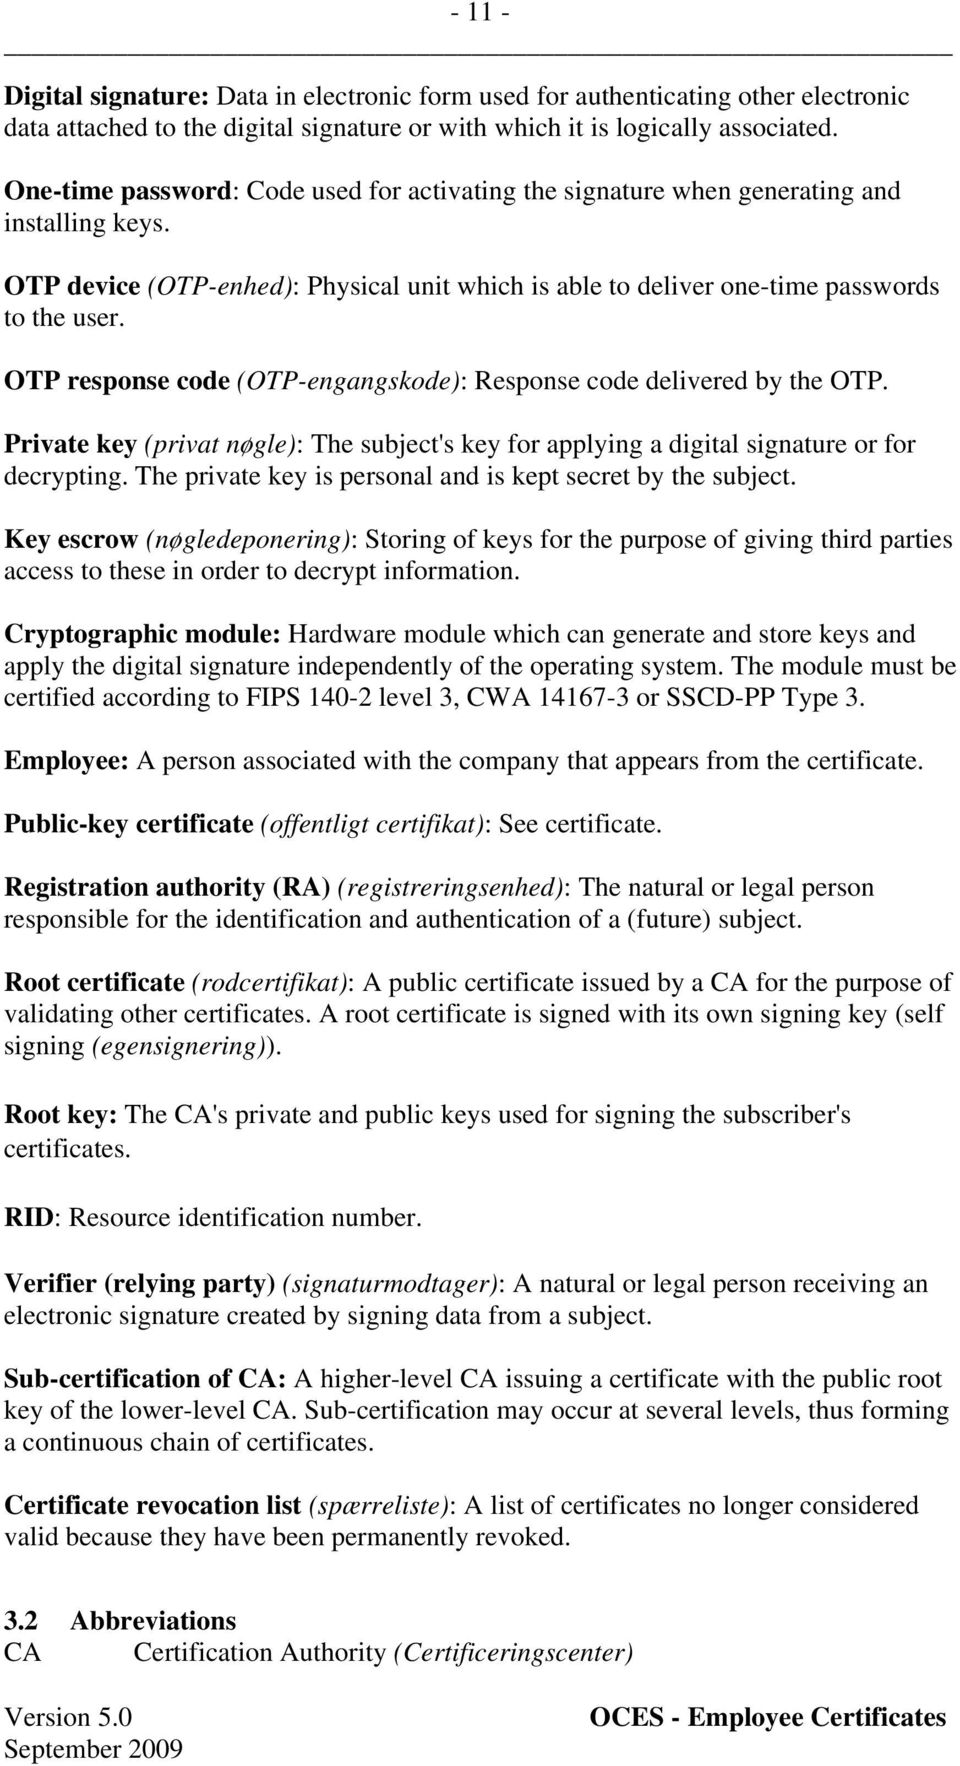 OTP response code (OTP-engangskode): Response code delivered by the OTP. Private key (privat nøgle): The subject's key for applying a digital signature or for decrypting.